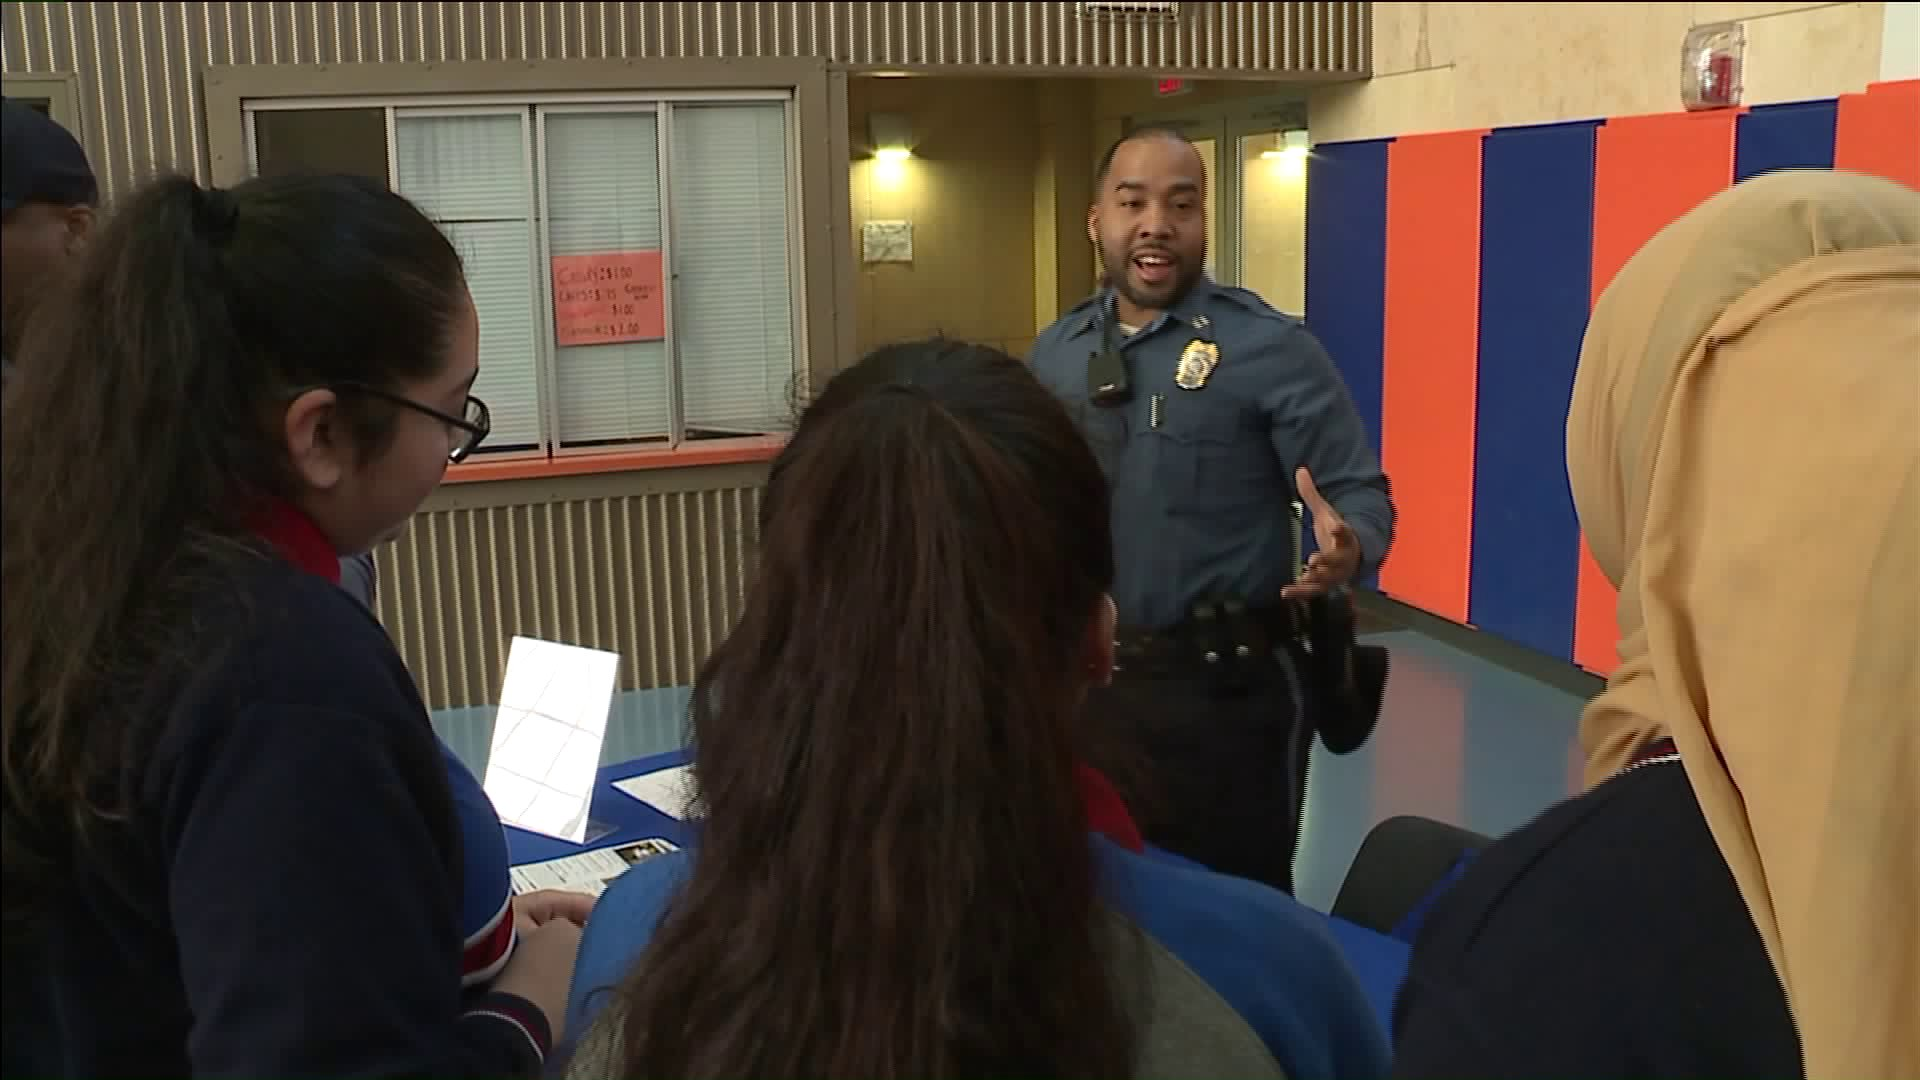 Police recruit high schoolers for public servant jobs